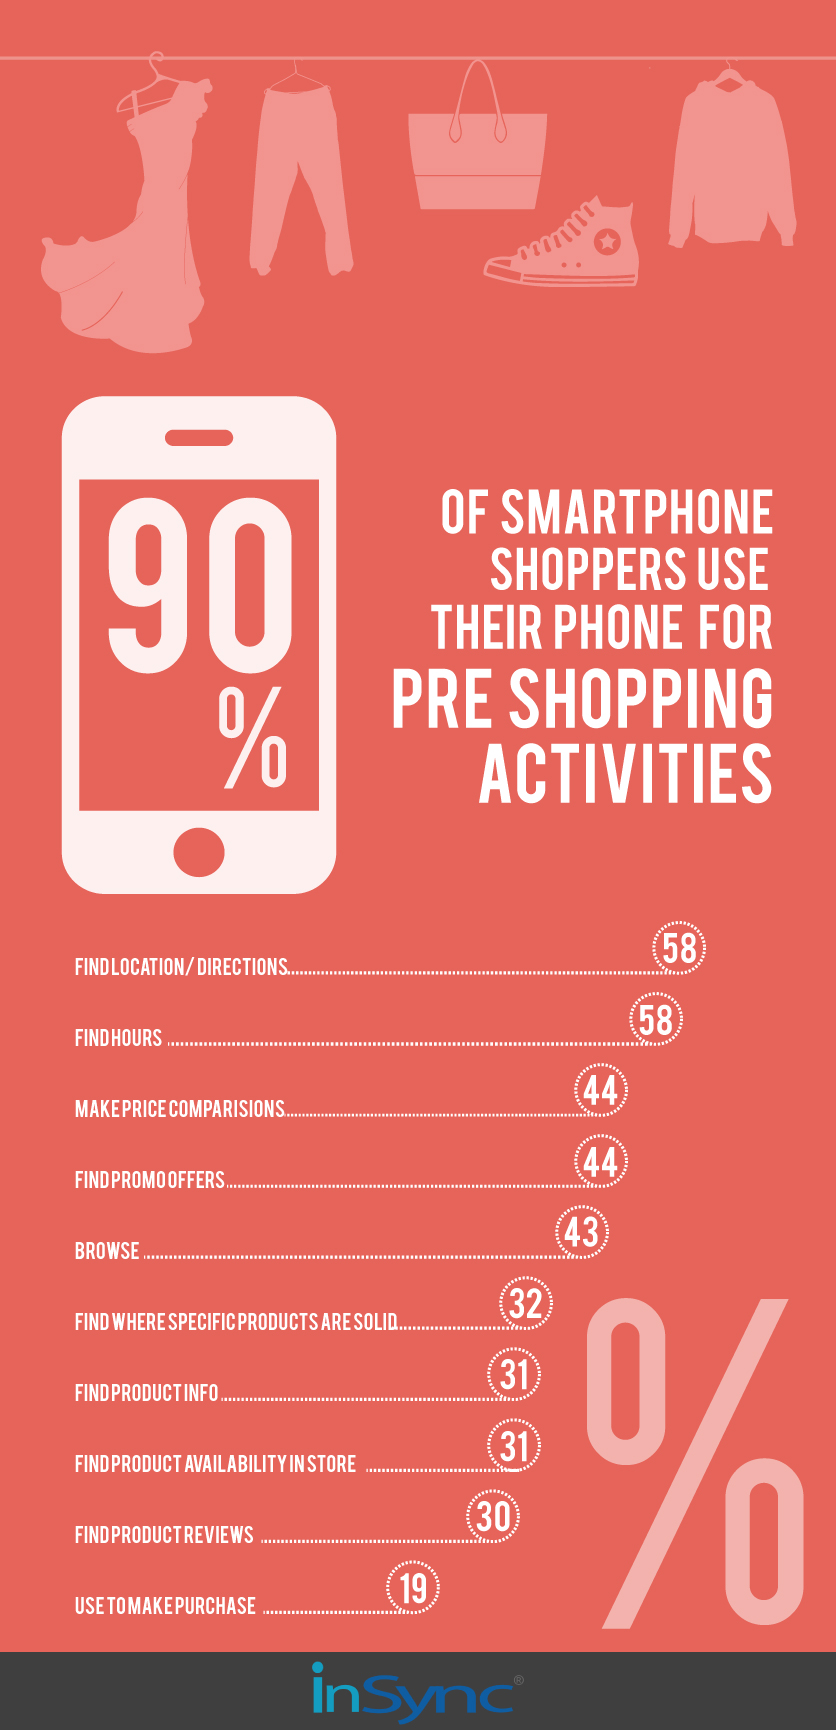 Pre Shopping Activities by Smartphone Shoppers